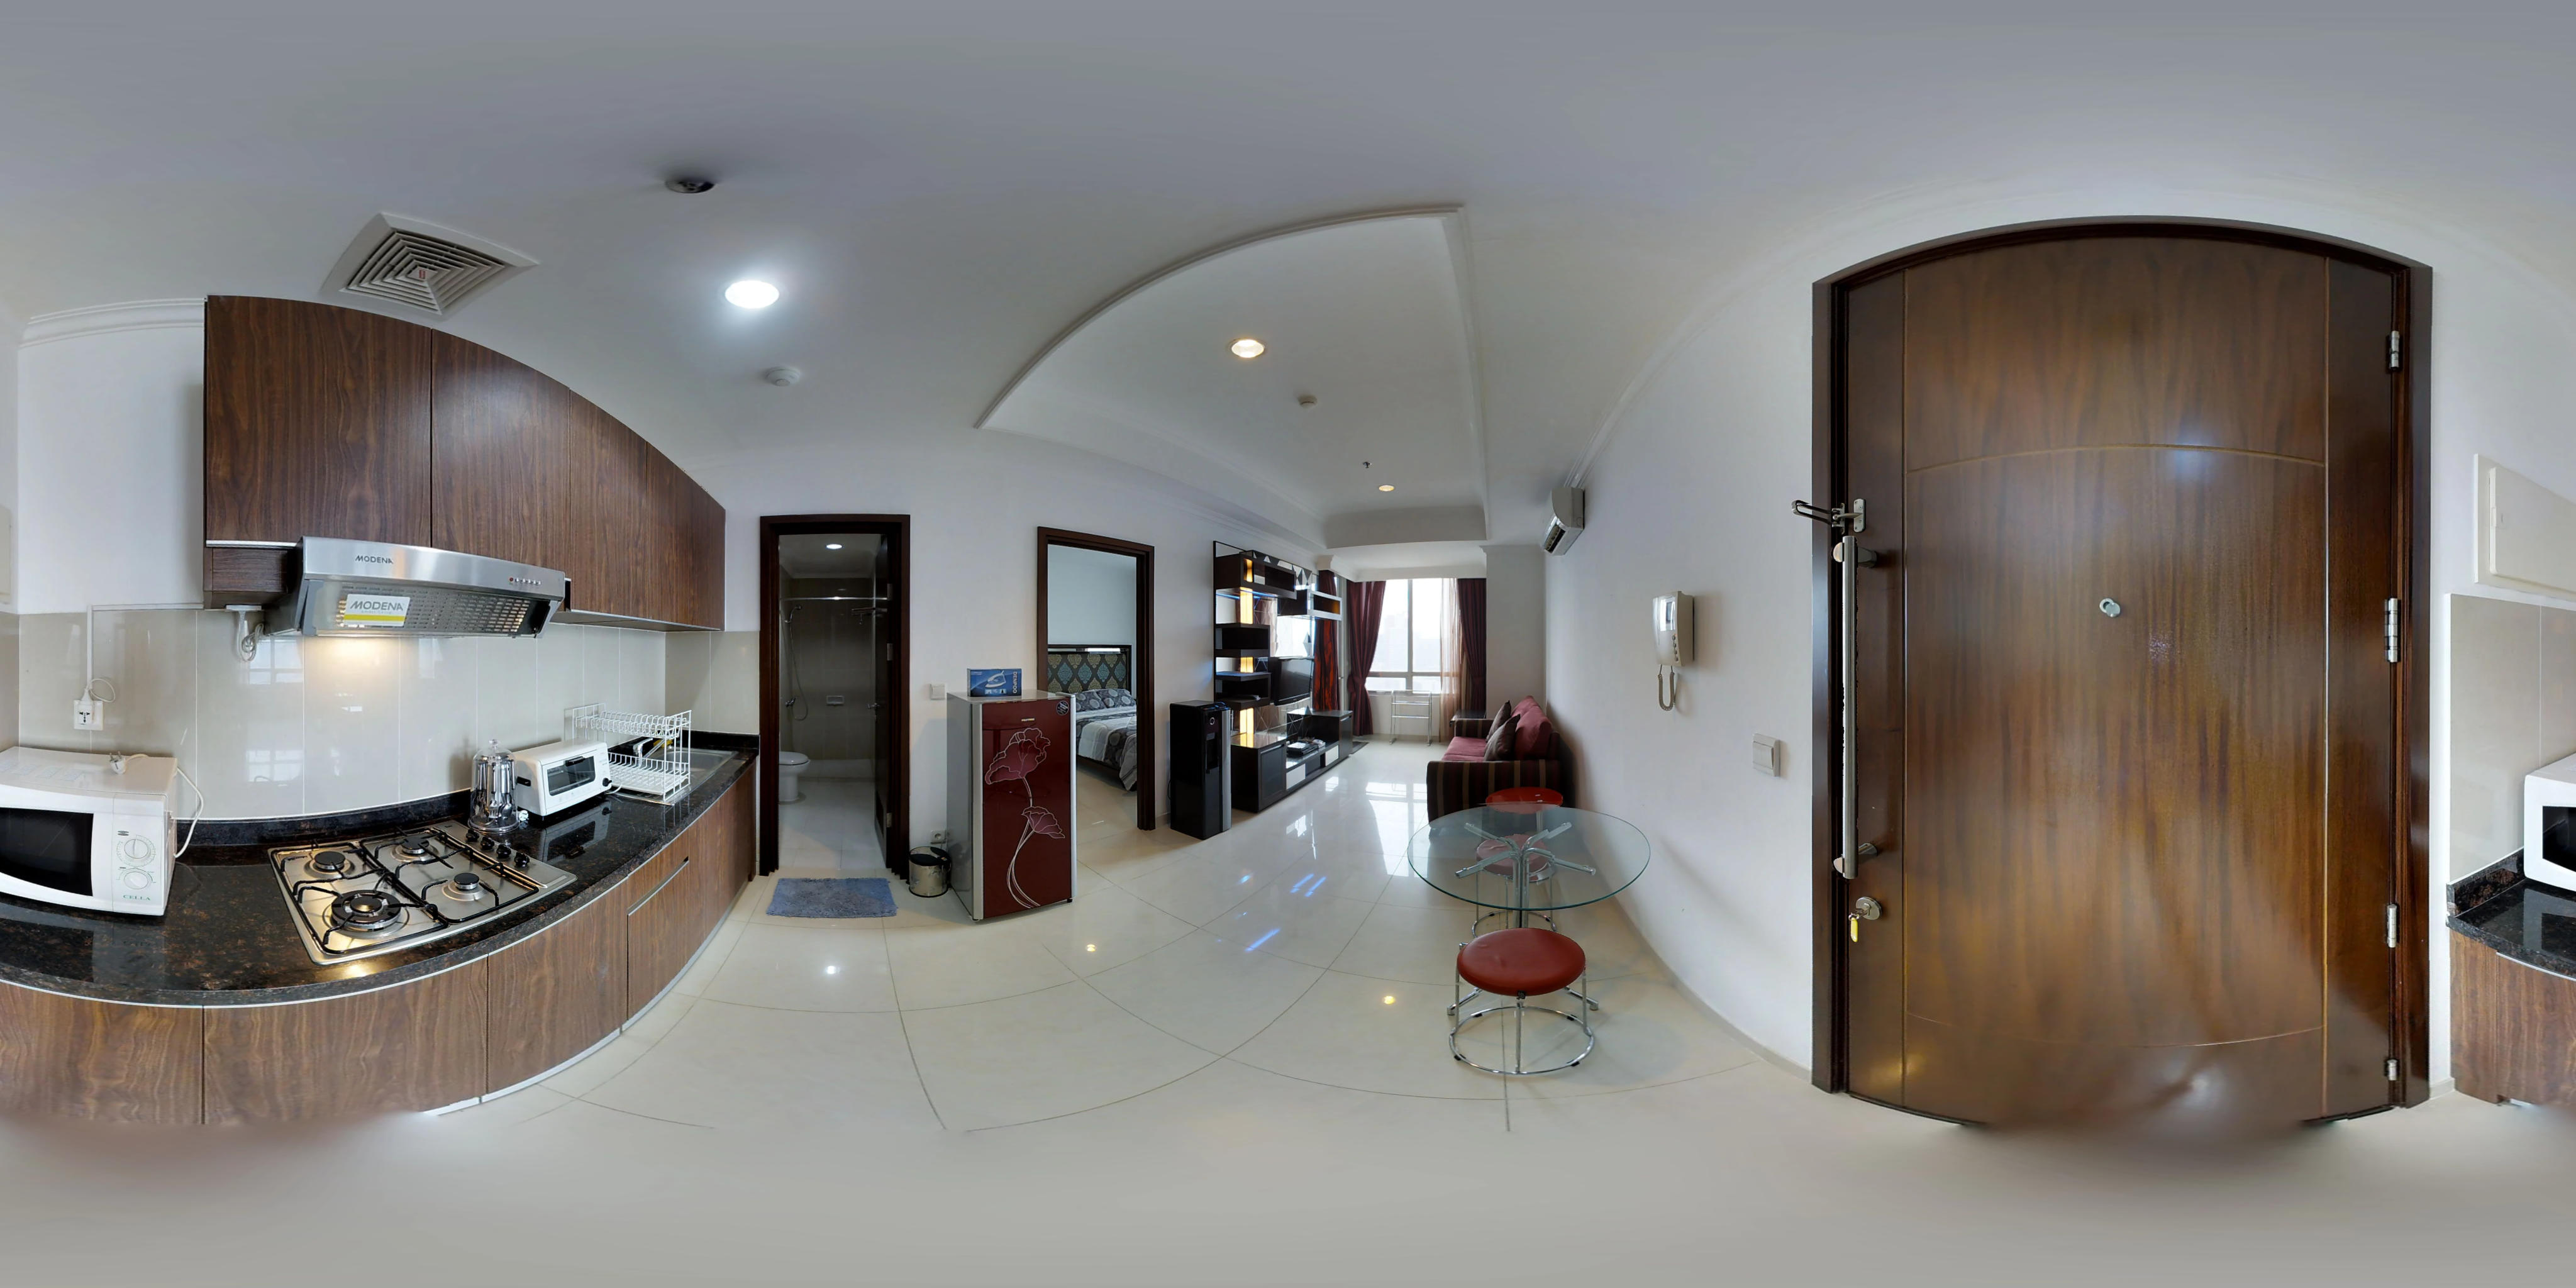 for rent Denpasar Residence - Your cozy apartment only steps away from Kuningan Business district